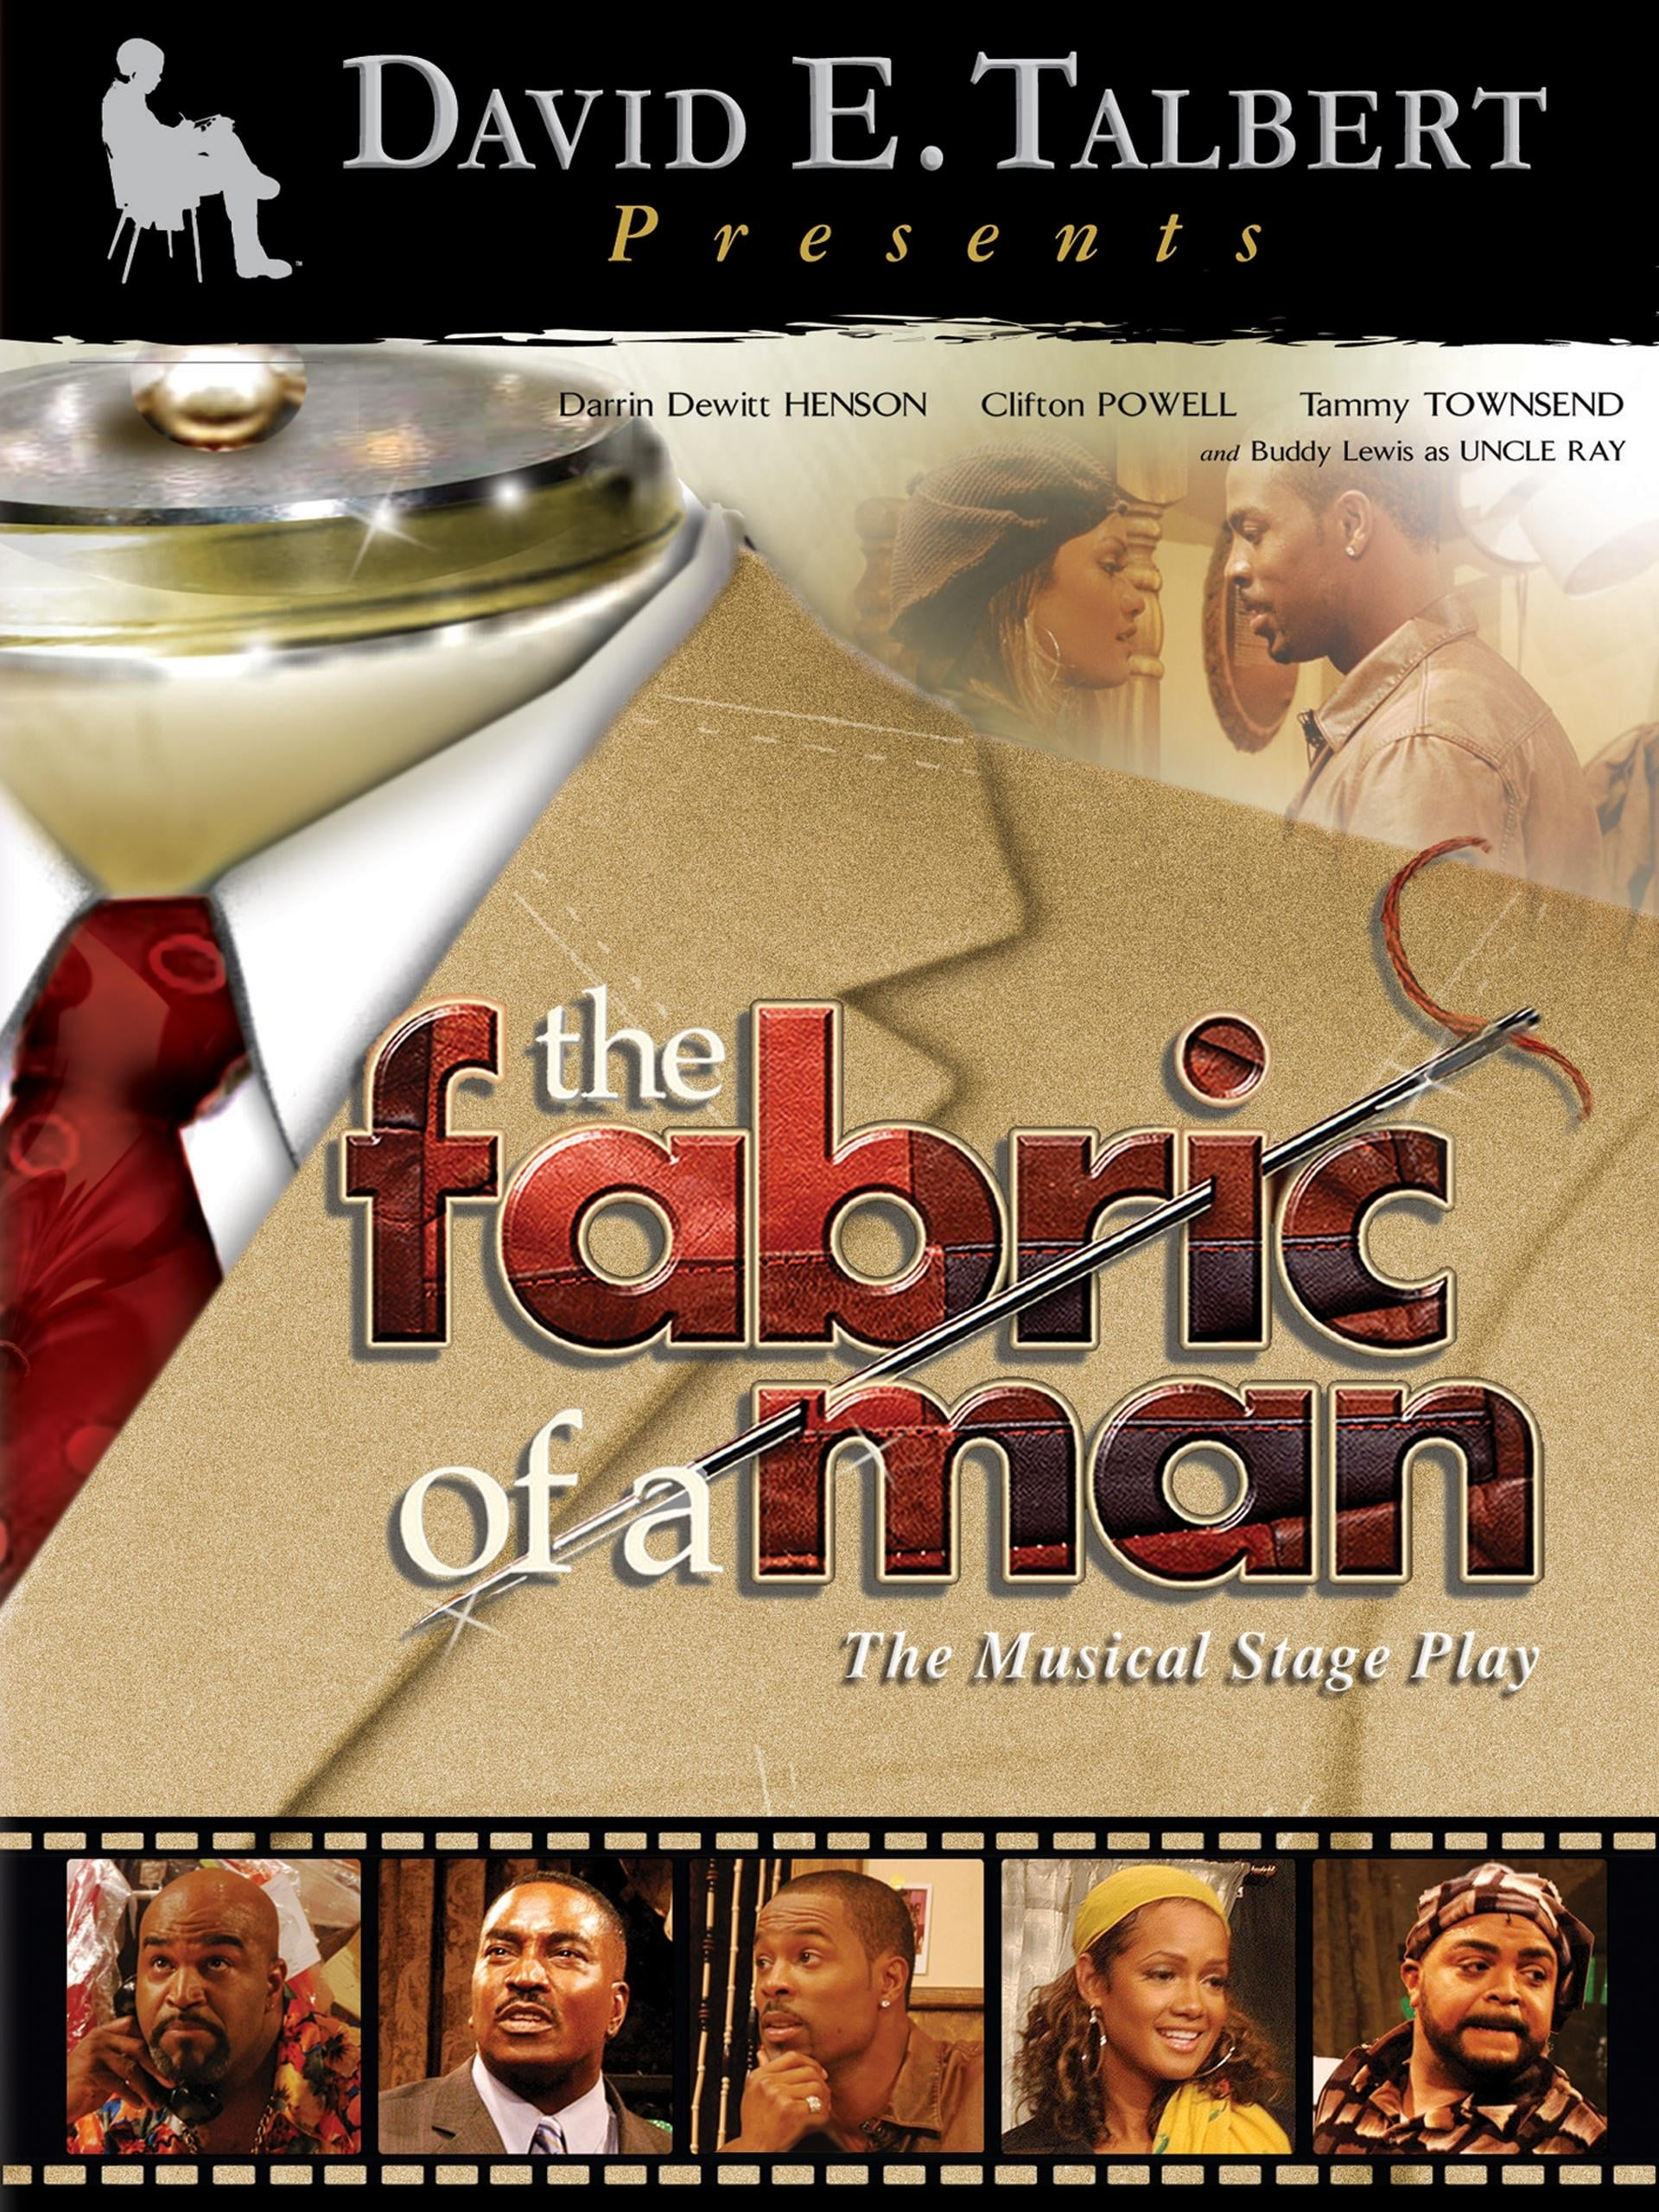 The Fabric of a Man